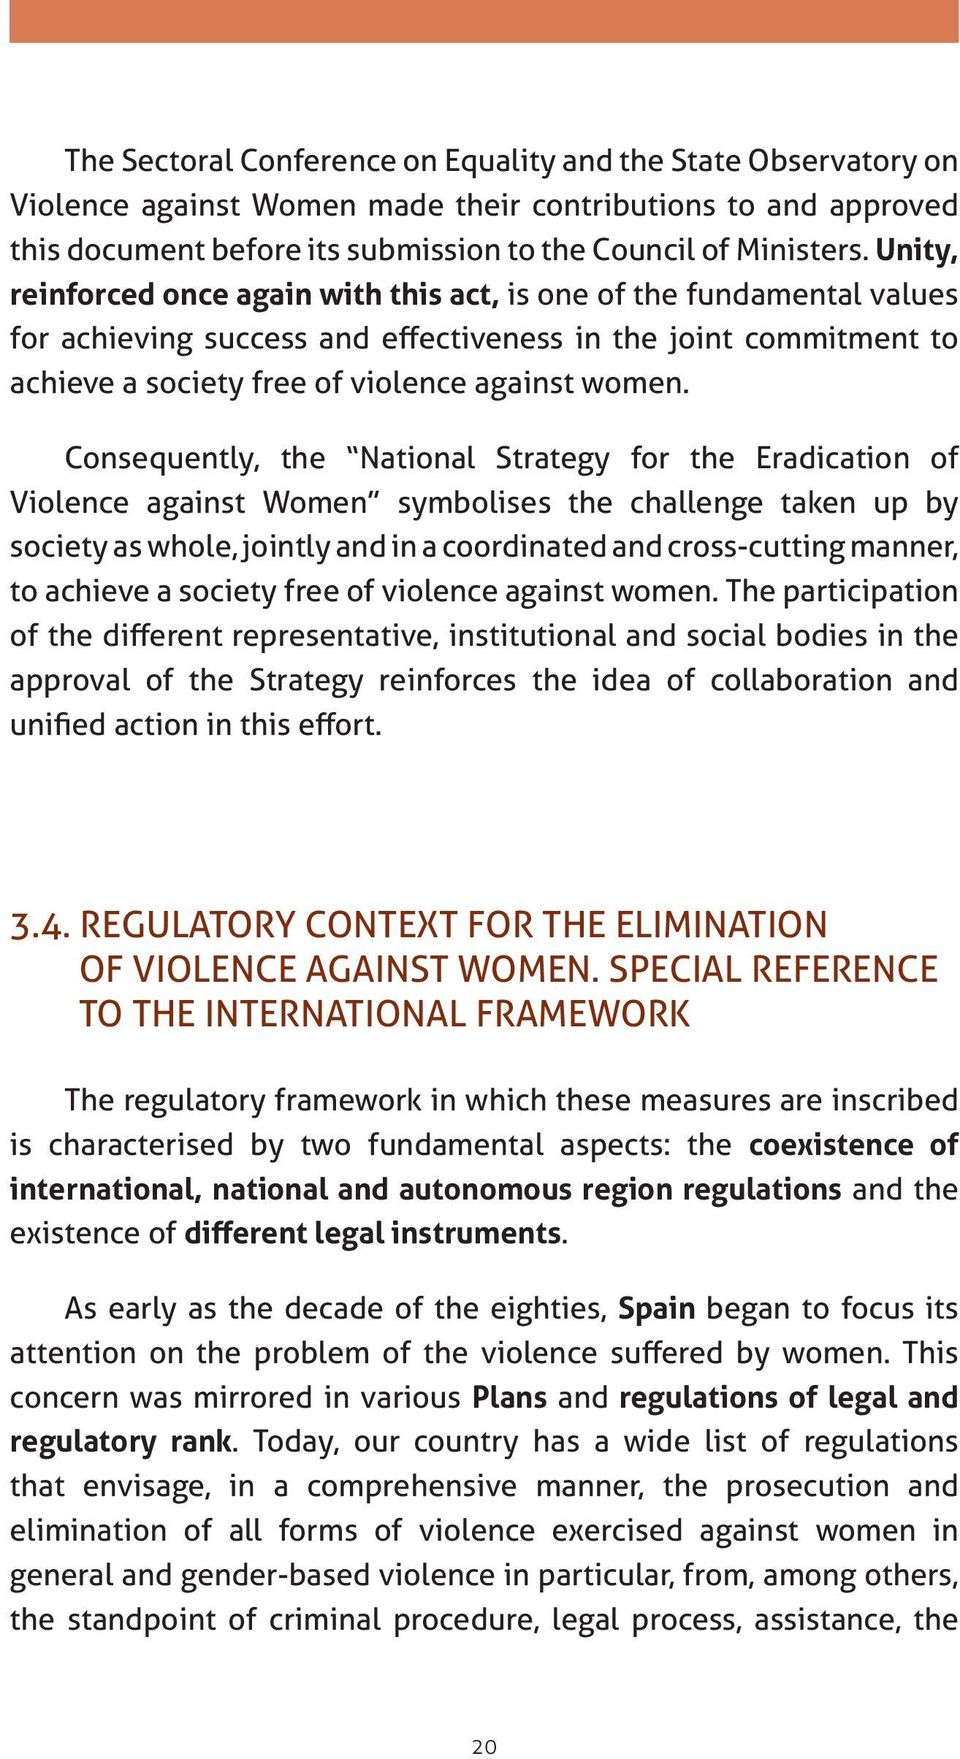 Consequently, the National Strategy for the Eradication of Violence against Women symbolises the challenge taken up by society as whole, jointly and in a coordinated and cross-cutting manner, to